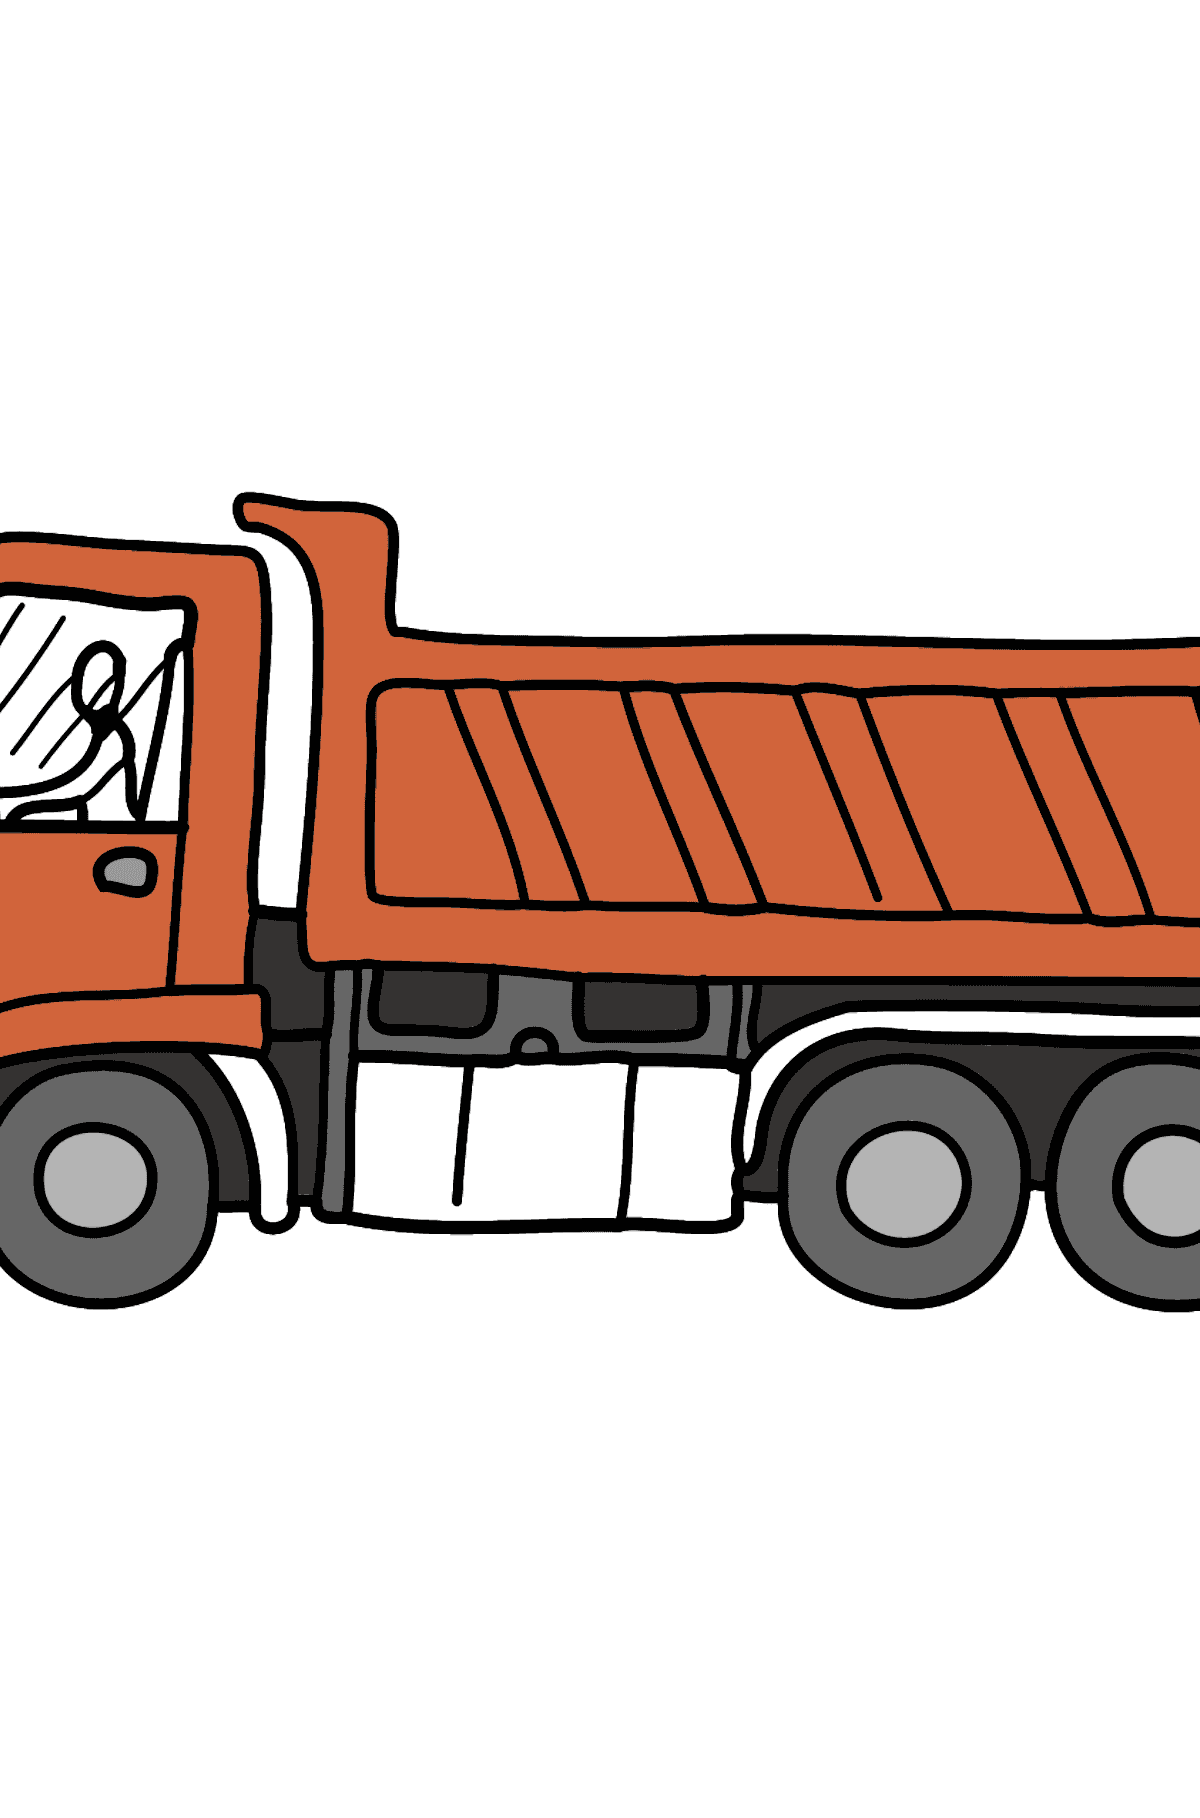 Coloring Page - A Dump Truck - Coloring Pages for Kids